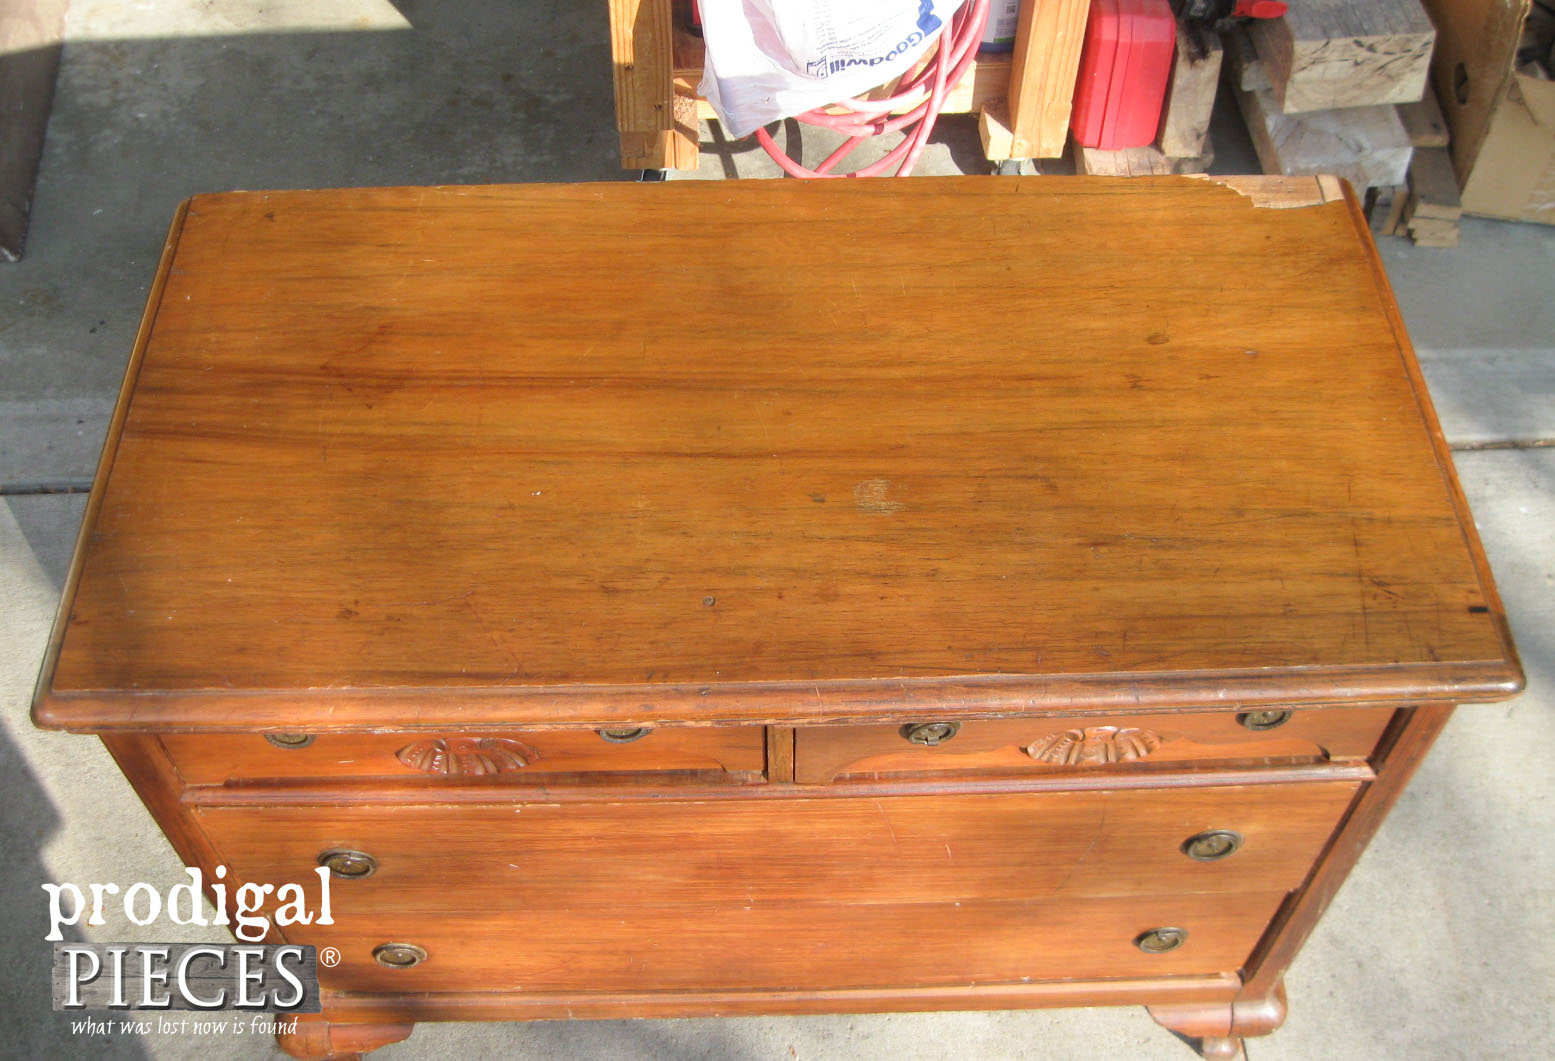 Damaged Dresser Top | Prodigal Pieces | www.prodigalpieces.com